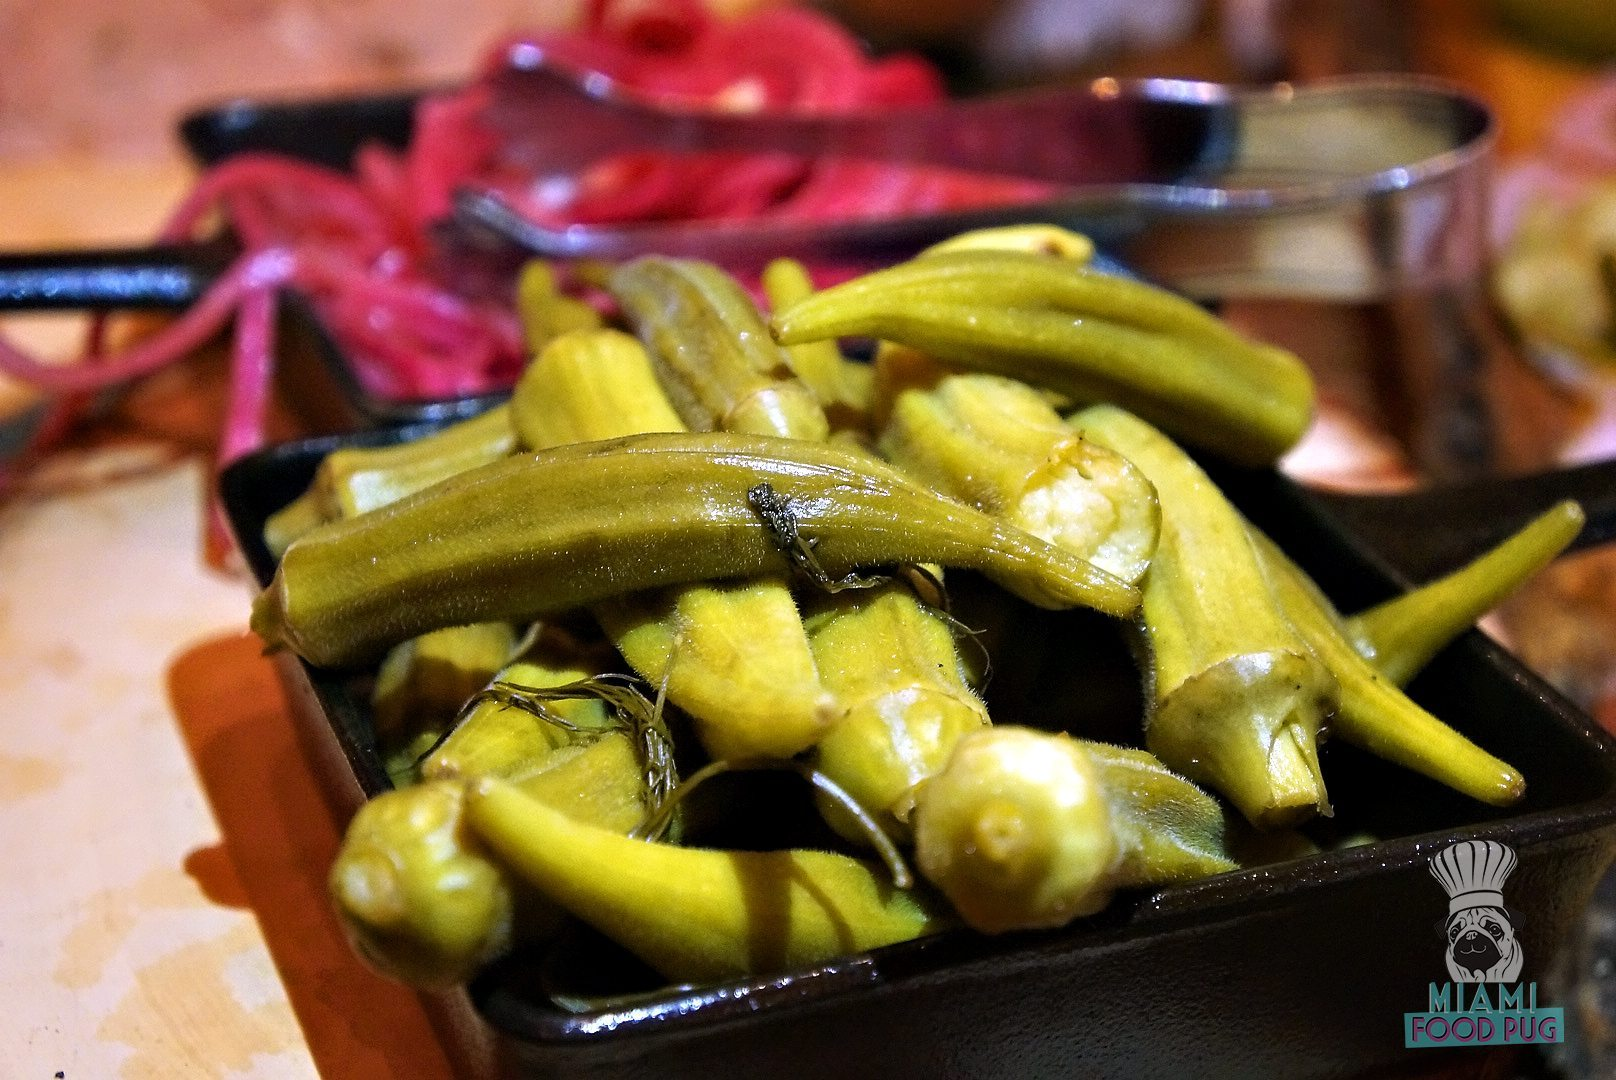 Smithfield's Chef's Table Pickled Vegetables